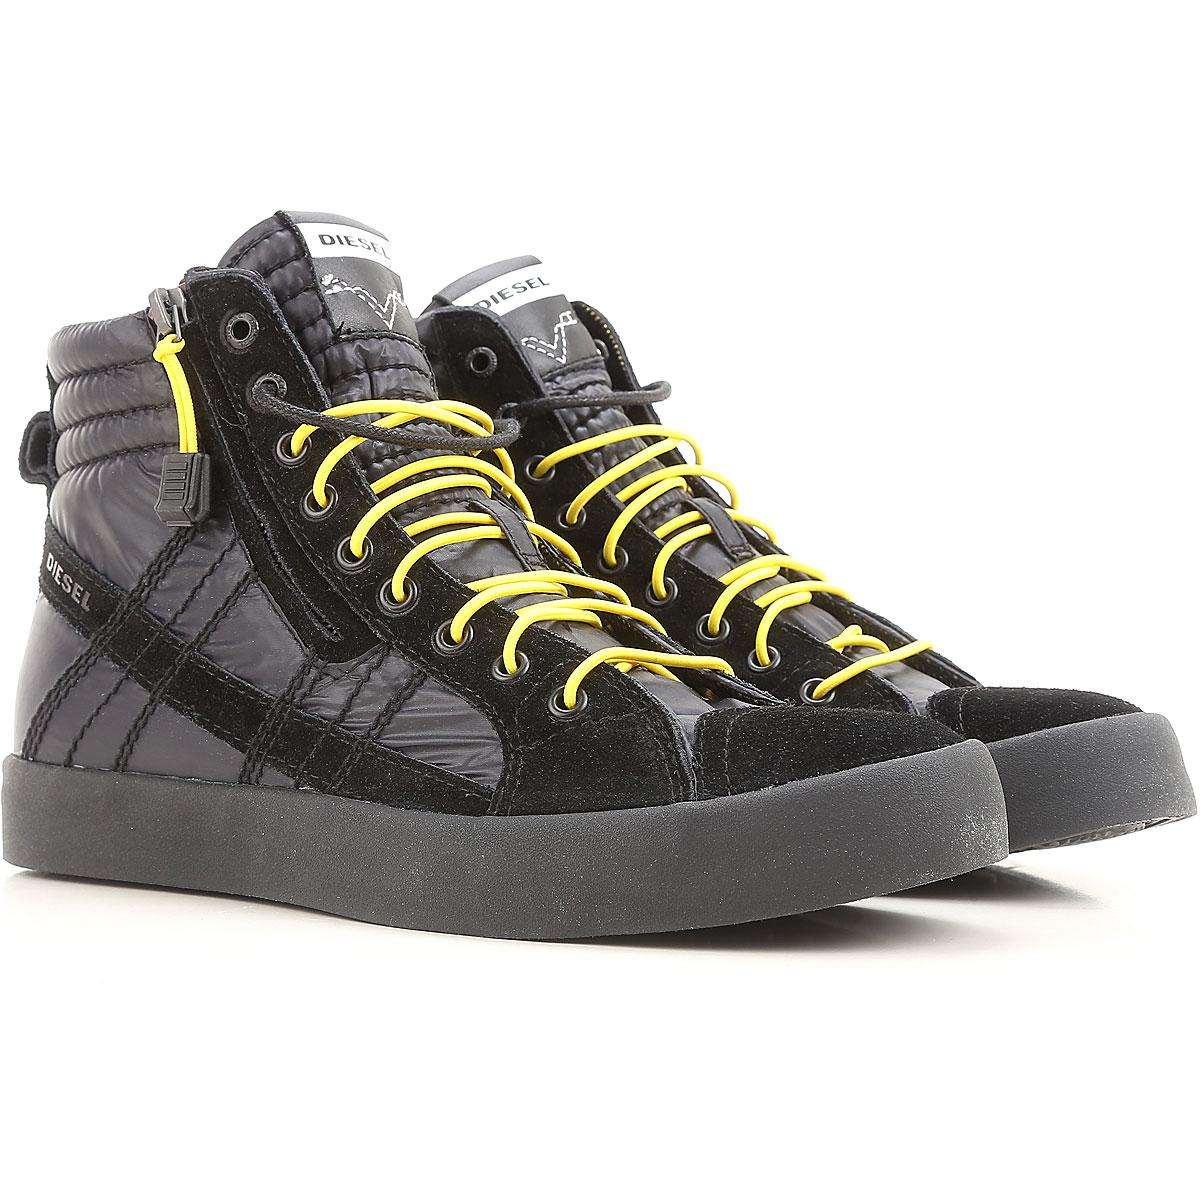 lyst diesel shoes for men in black for men